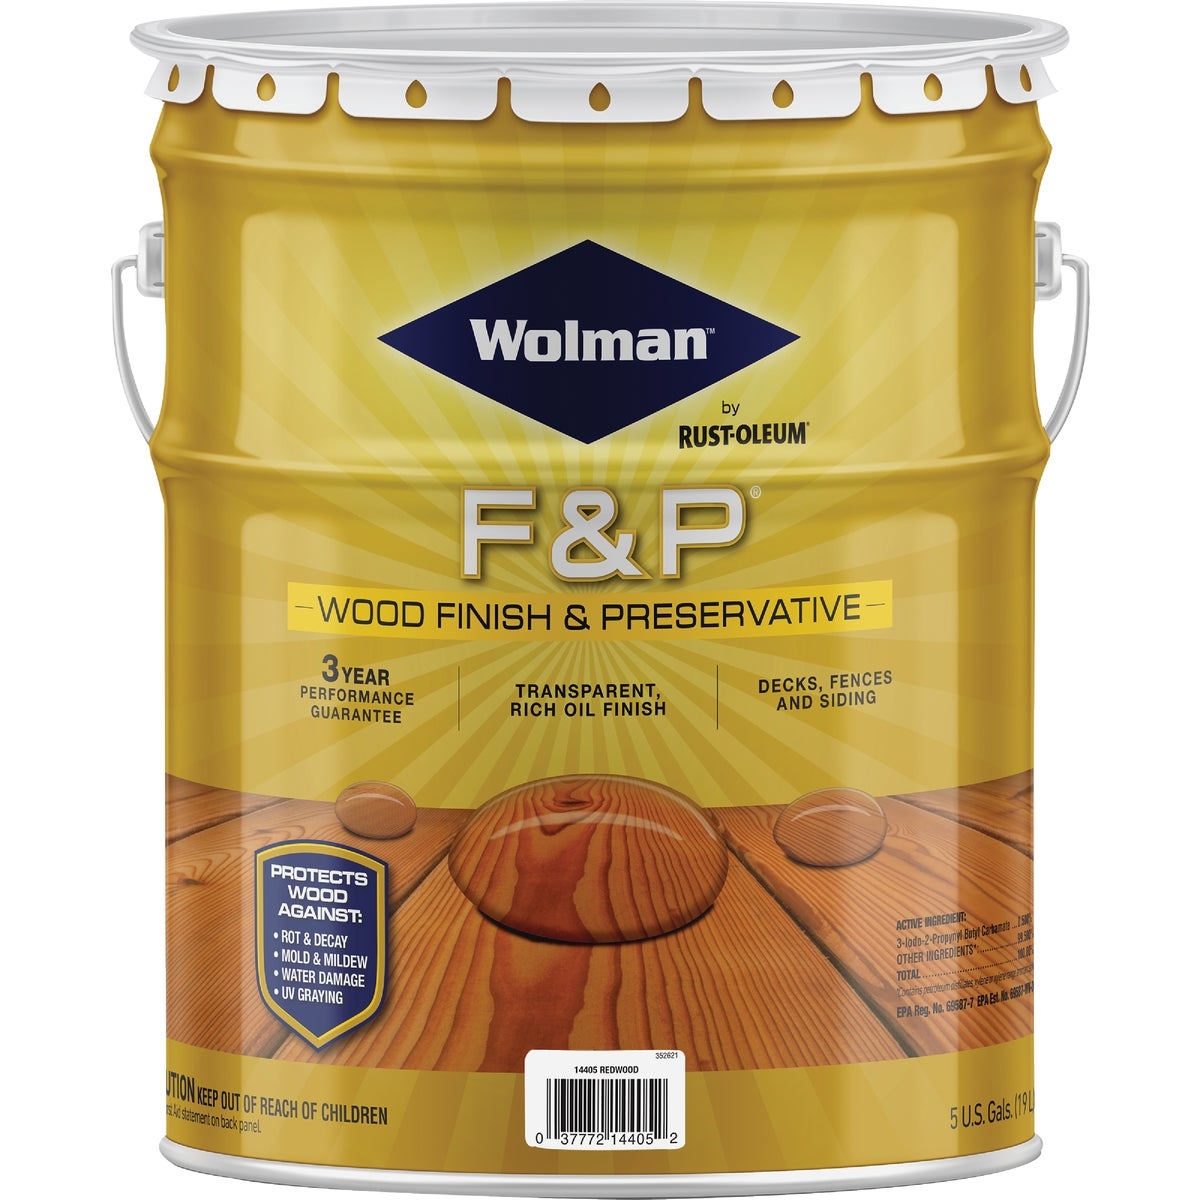 F&P REDWOOD FINISH - 14405 by Rustoleum